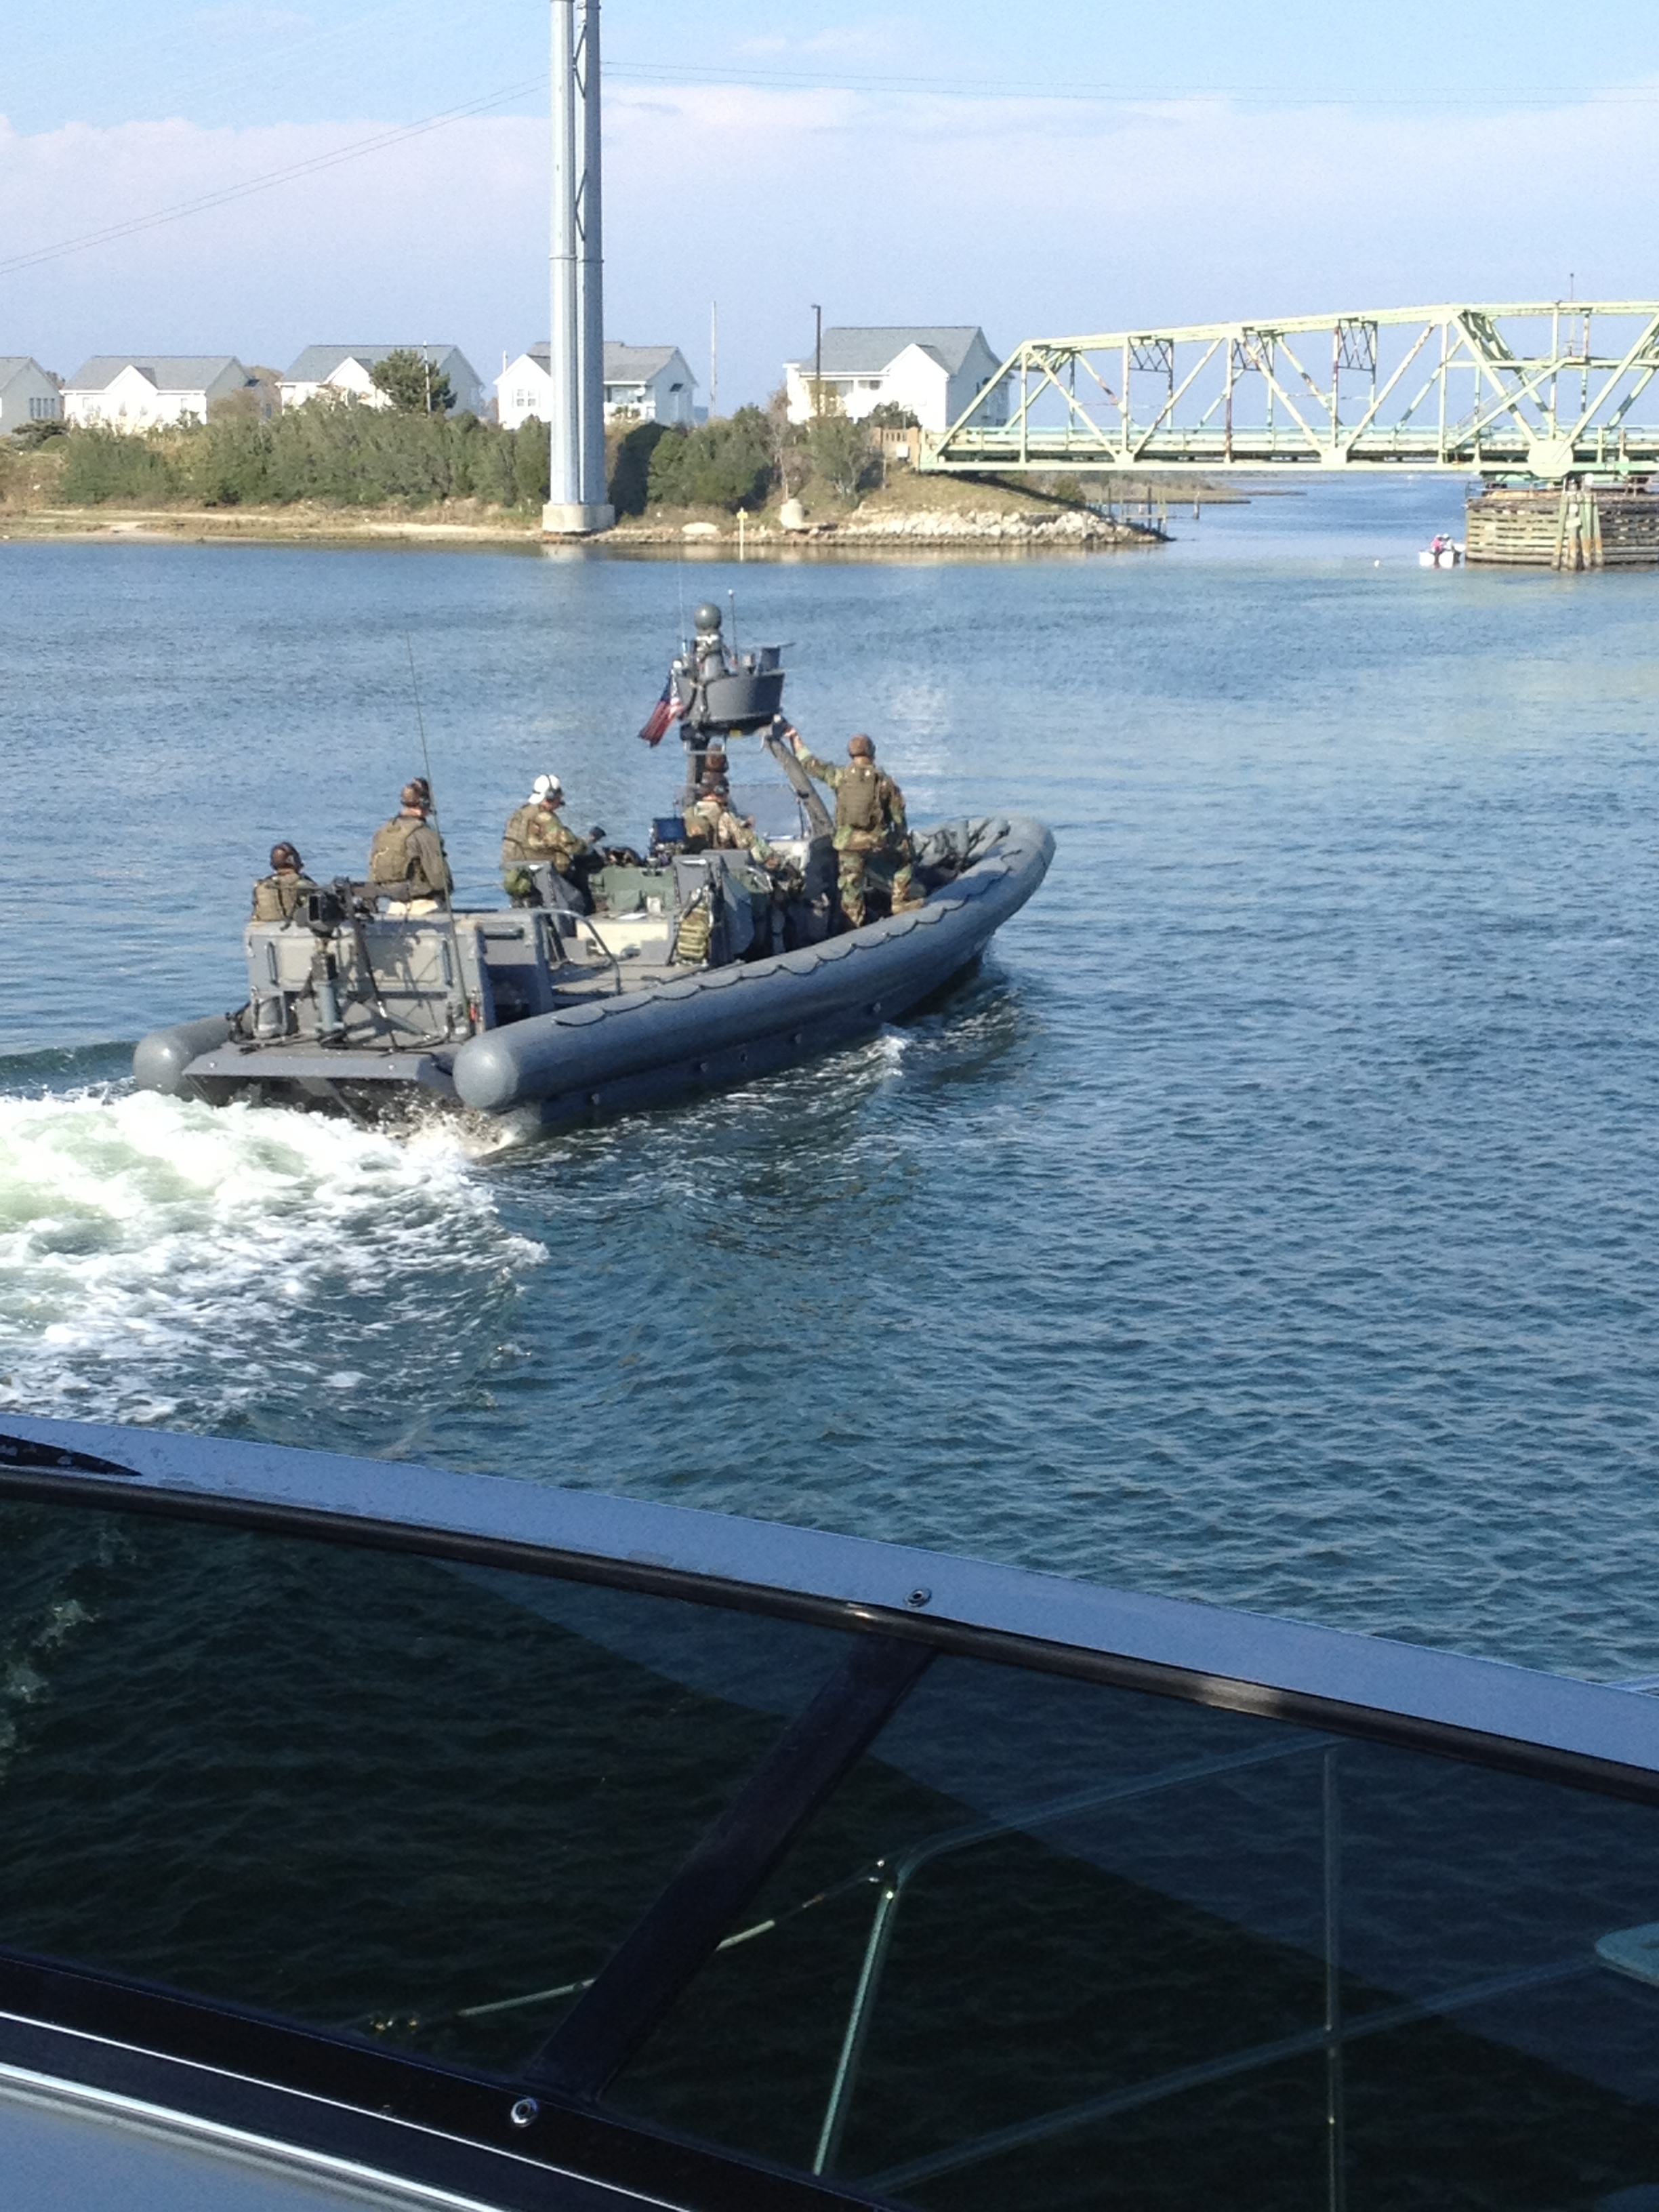 In most cases, a bigger boat has some degree of authority over a small boat…except when it is full of armed Marines.